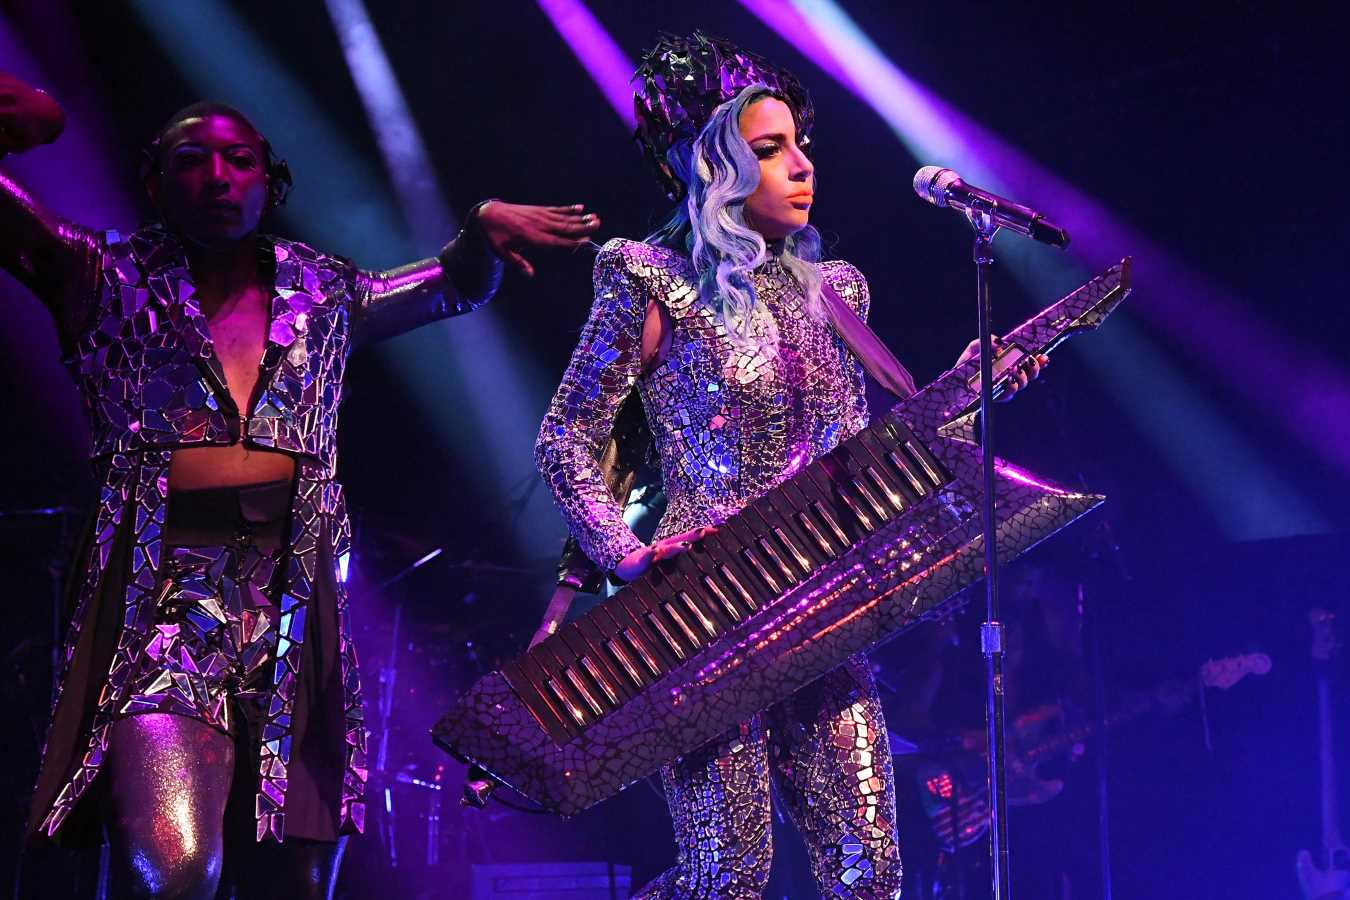 On the scene for Lady Gaga's first-ever performance at The Apollo